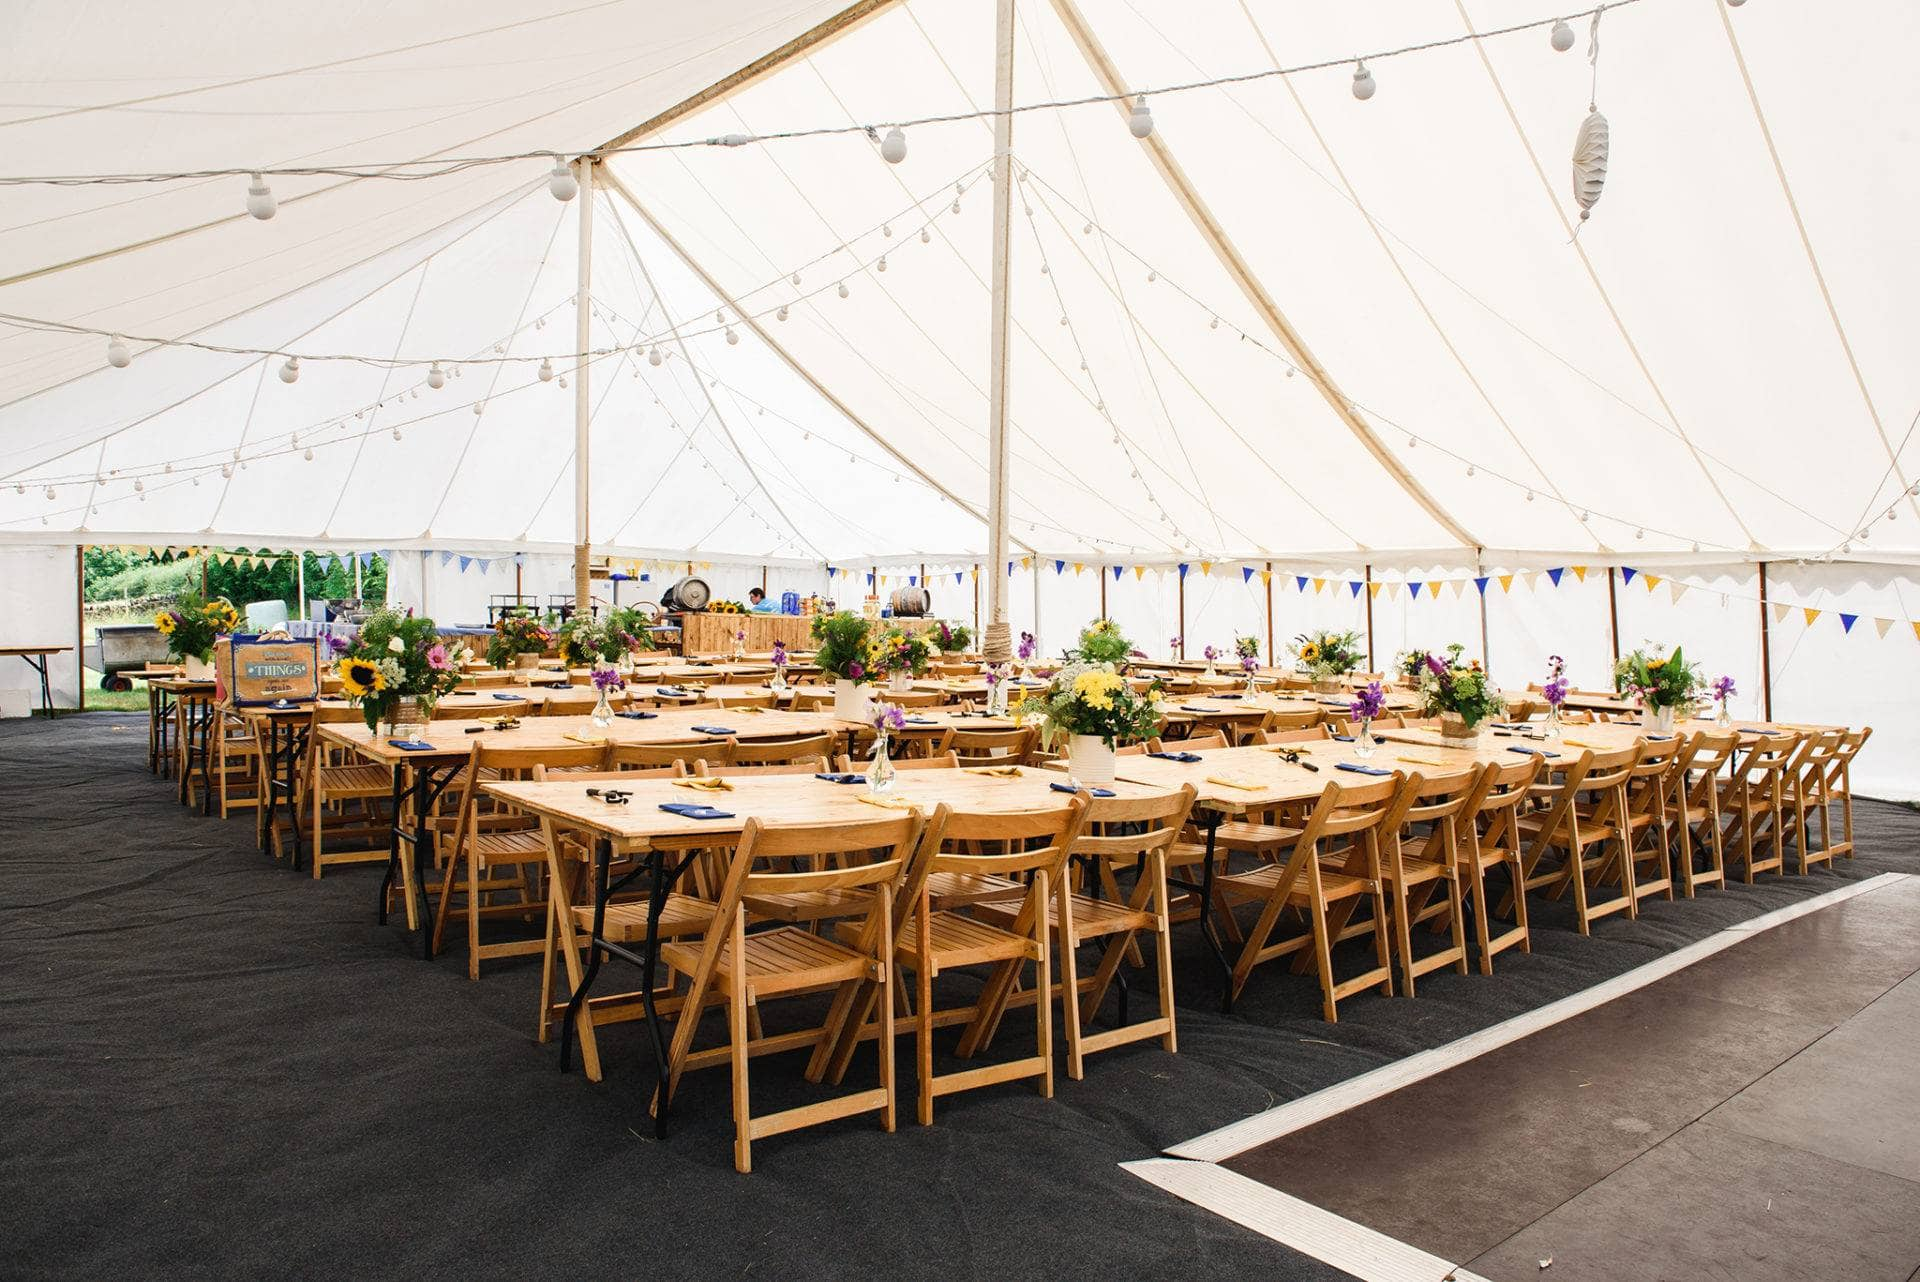 Inside of the tent with long rows of tables and chairs decorated for DIY Marquee summer wedding